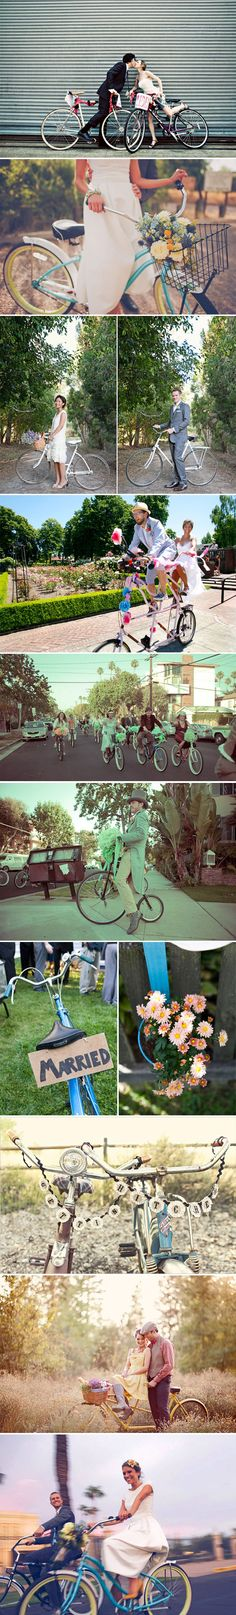 The Theme bikes The Theme // Get on your Bike! Wedding inspiration wedding ideas bike weddings bike wedding theme  wedding inspiration wedding decor 2 inspiration found and beautiful